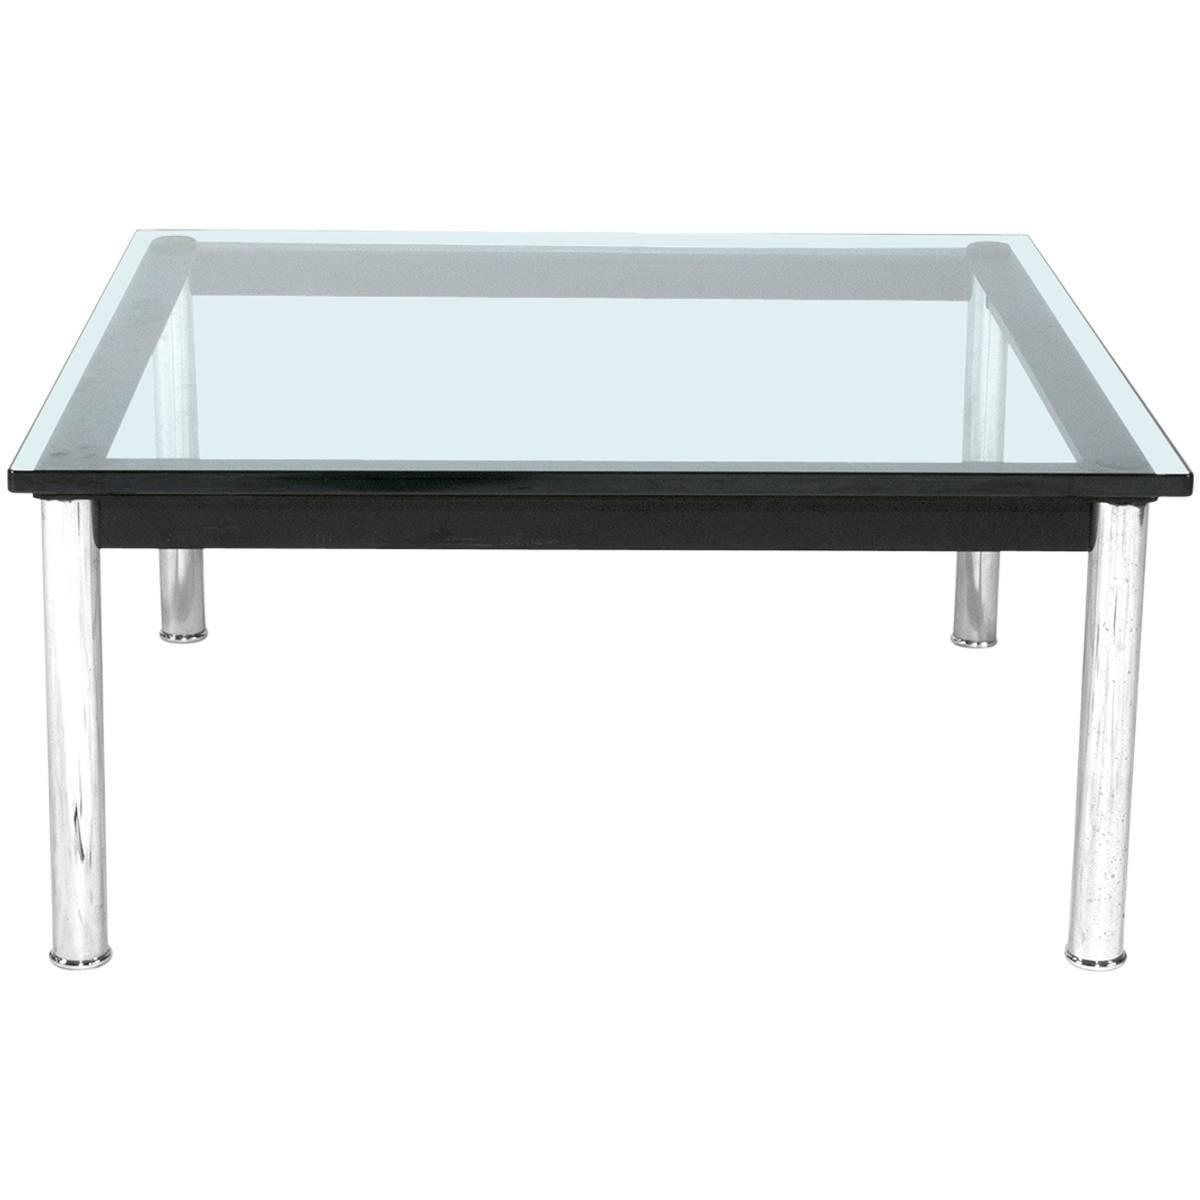 Cassina Lc10 Coffee Table By Le Corbusier Italy Modern For Sale At 1stdibs